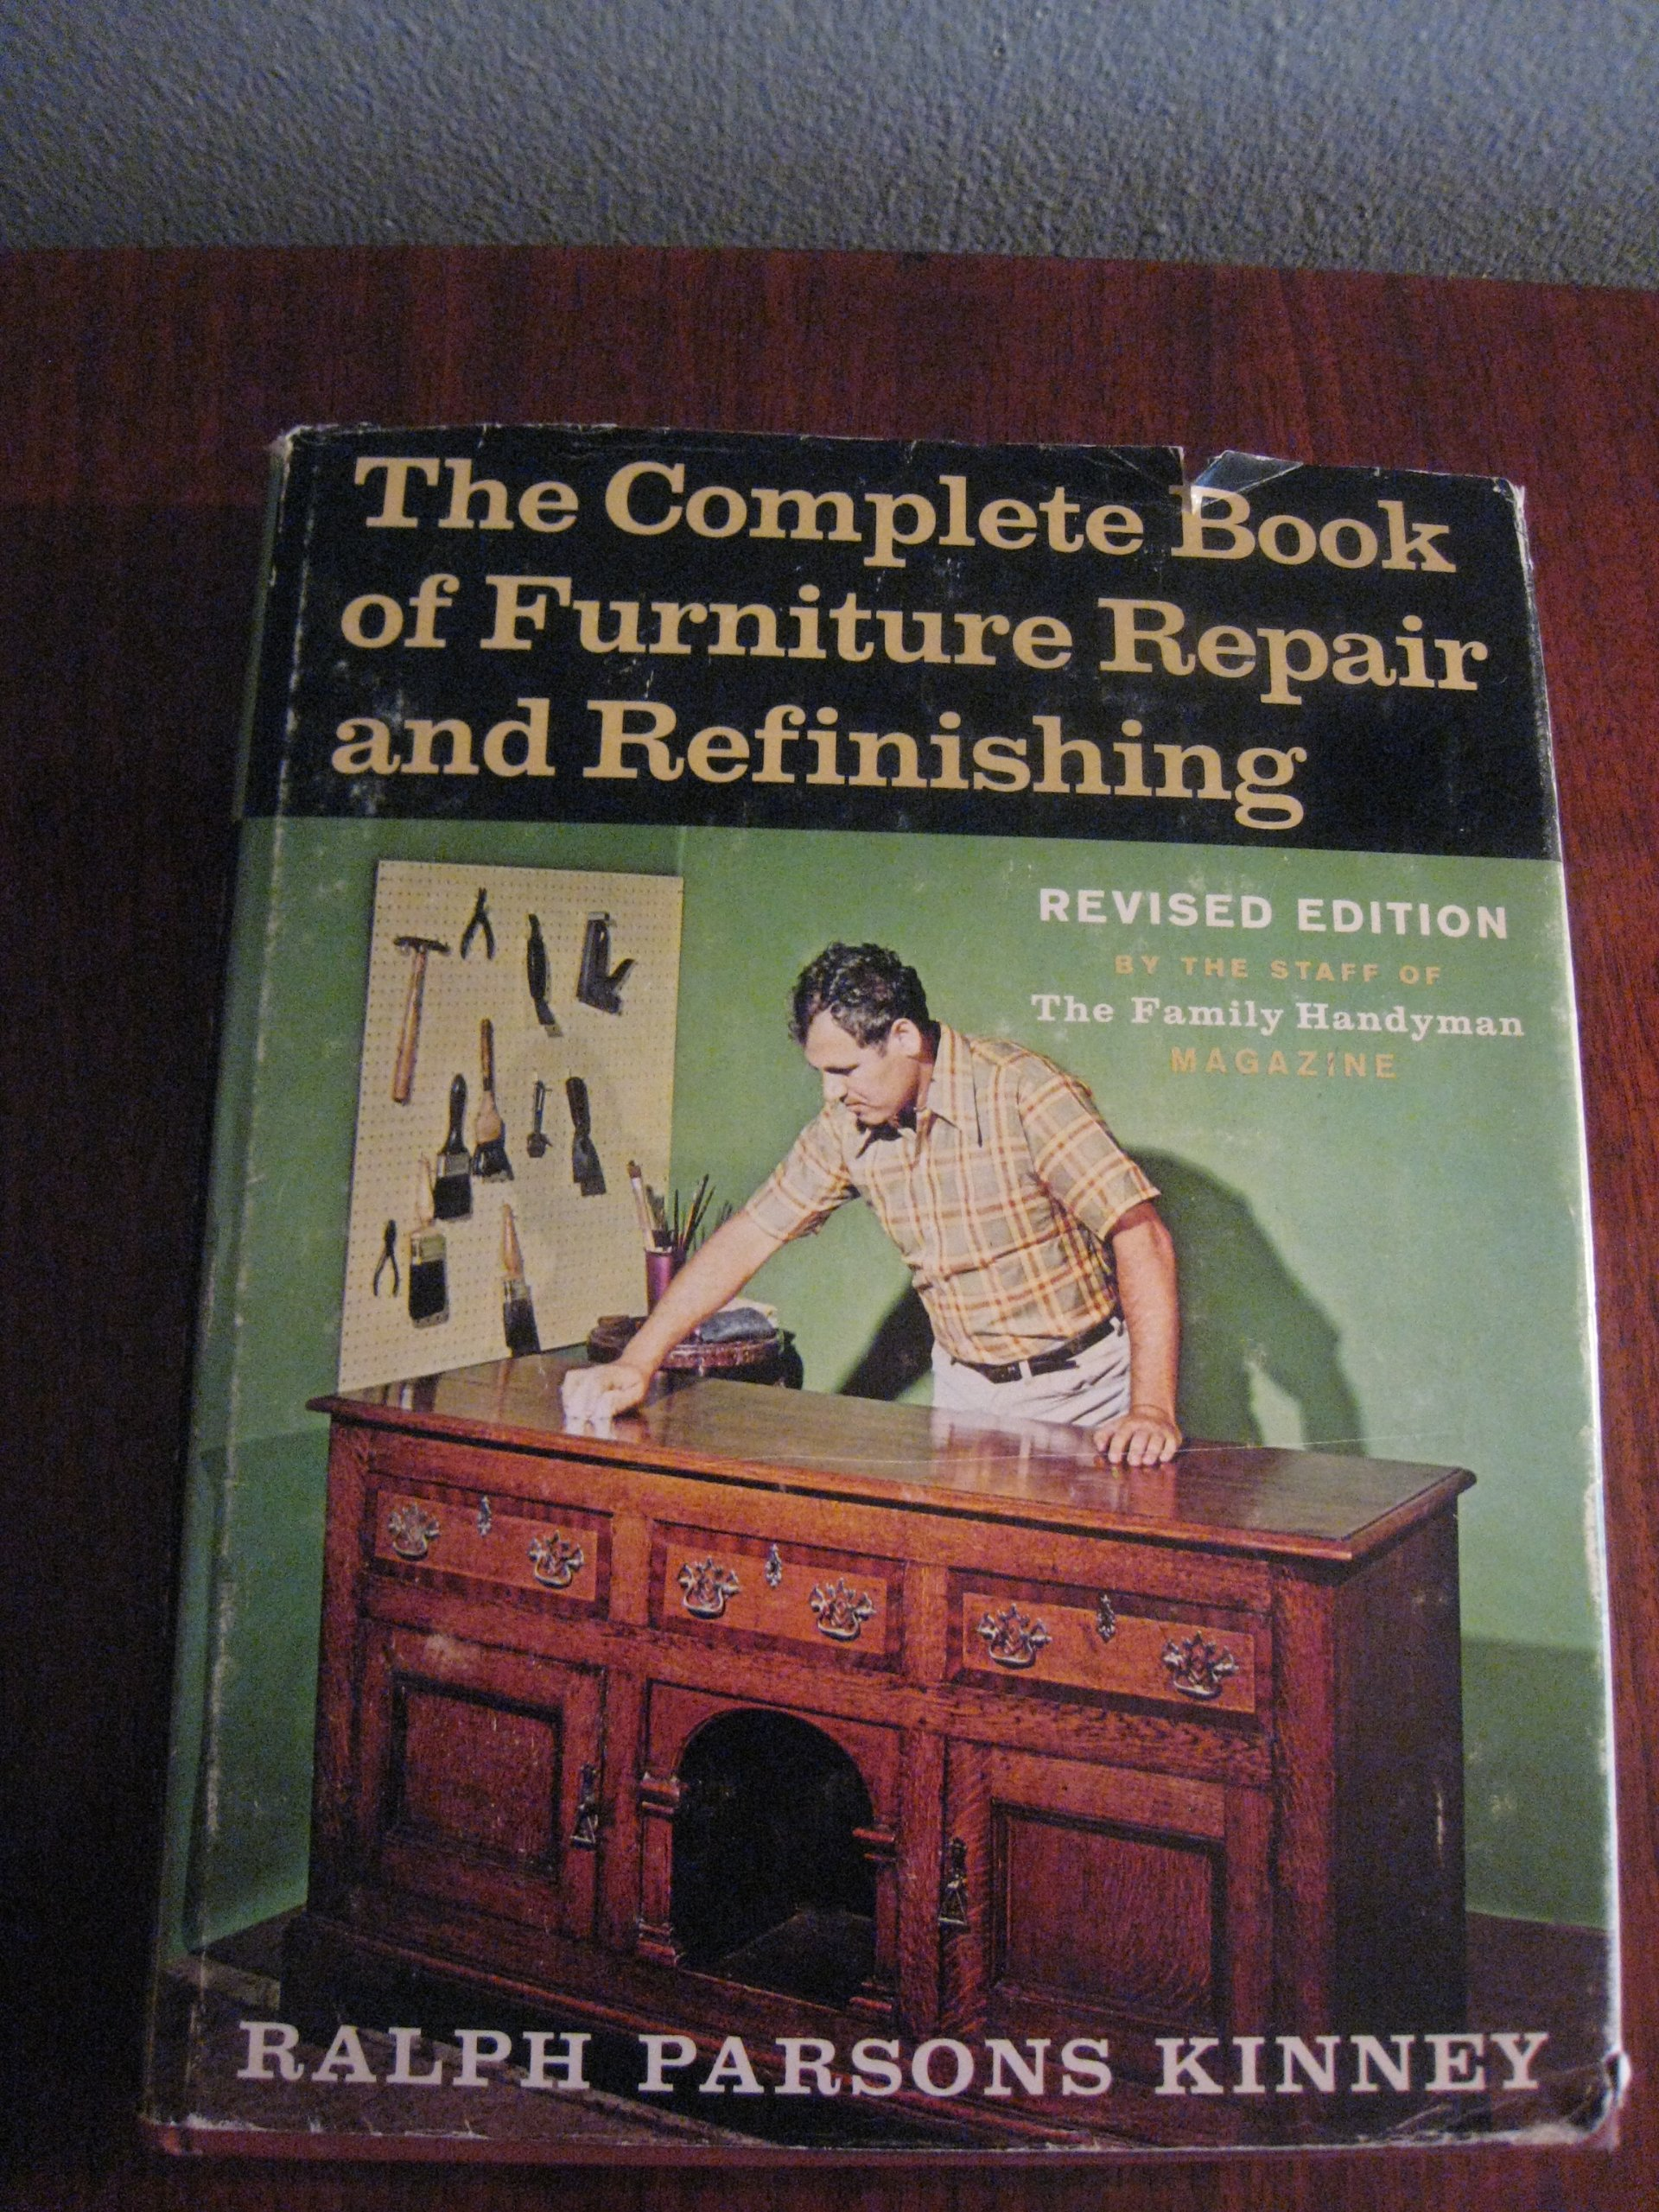 The Complete Book of Furniture Repair and Refinishing, By Ralph Parsons  Kinney, Rivised Edition By the Staff of the Family Handyman Magazine  Copyright 1971: ...